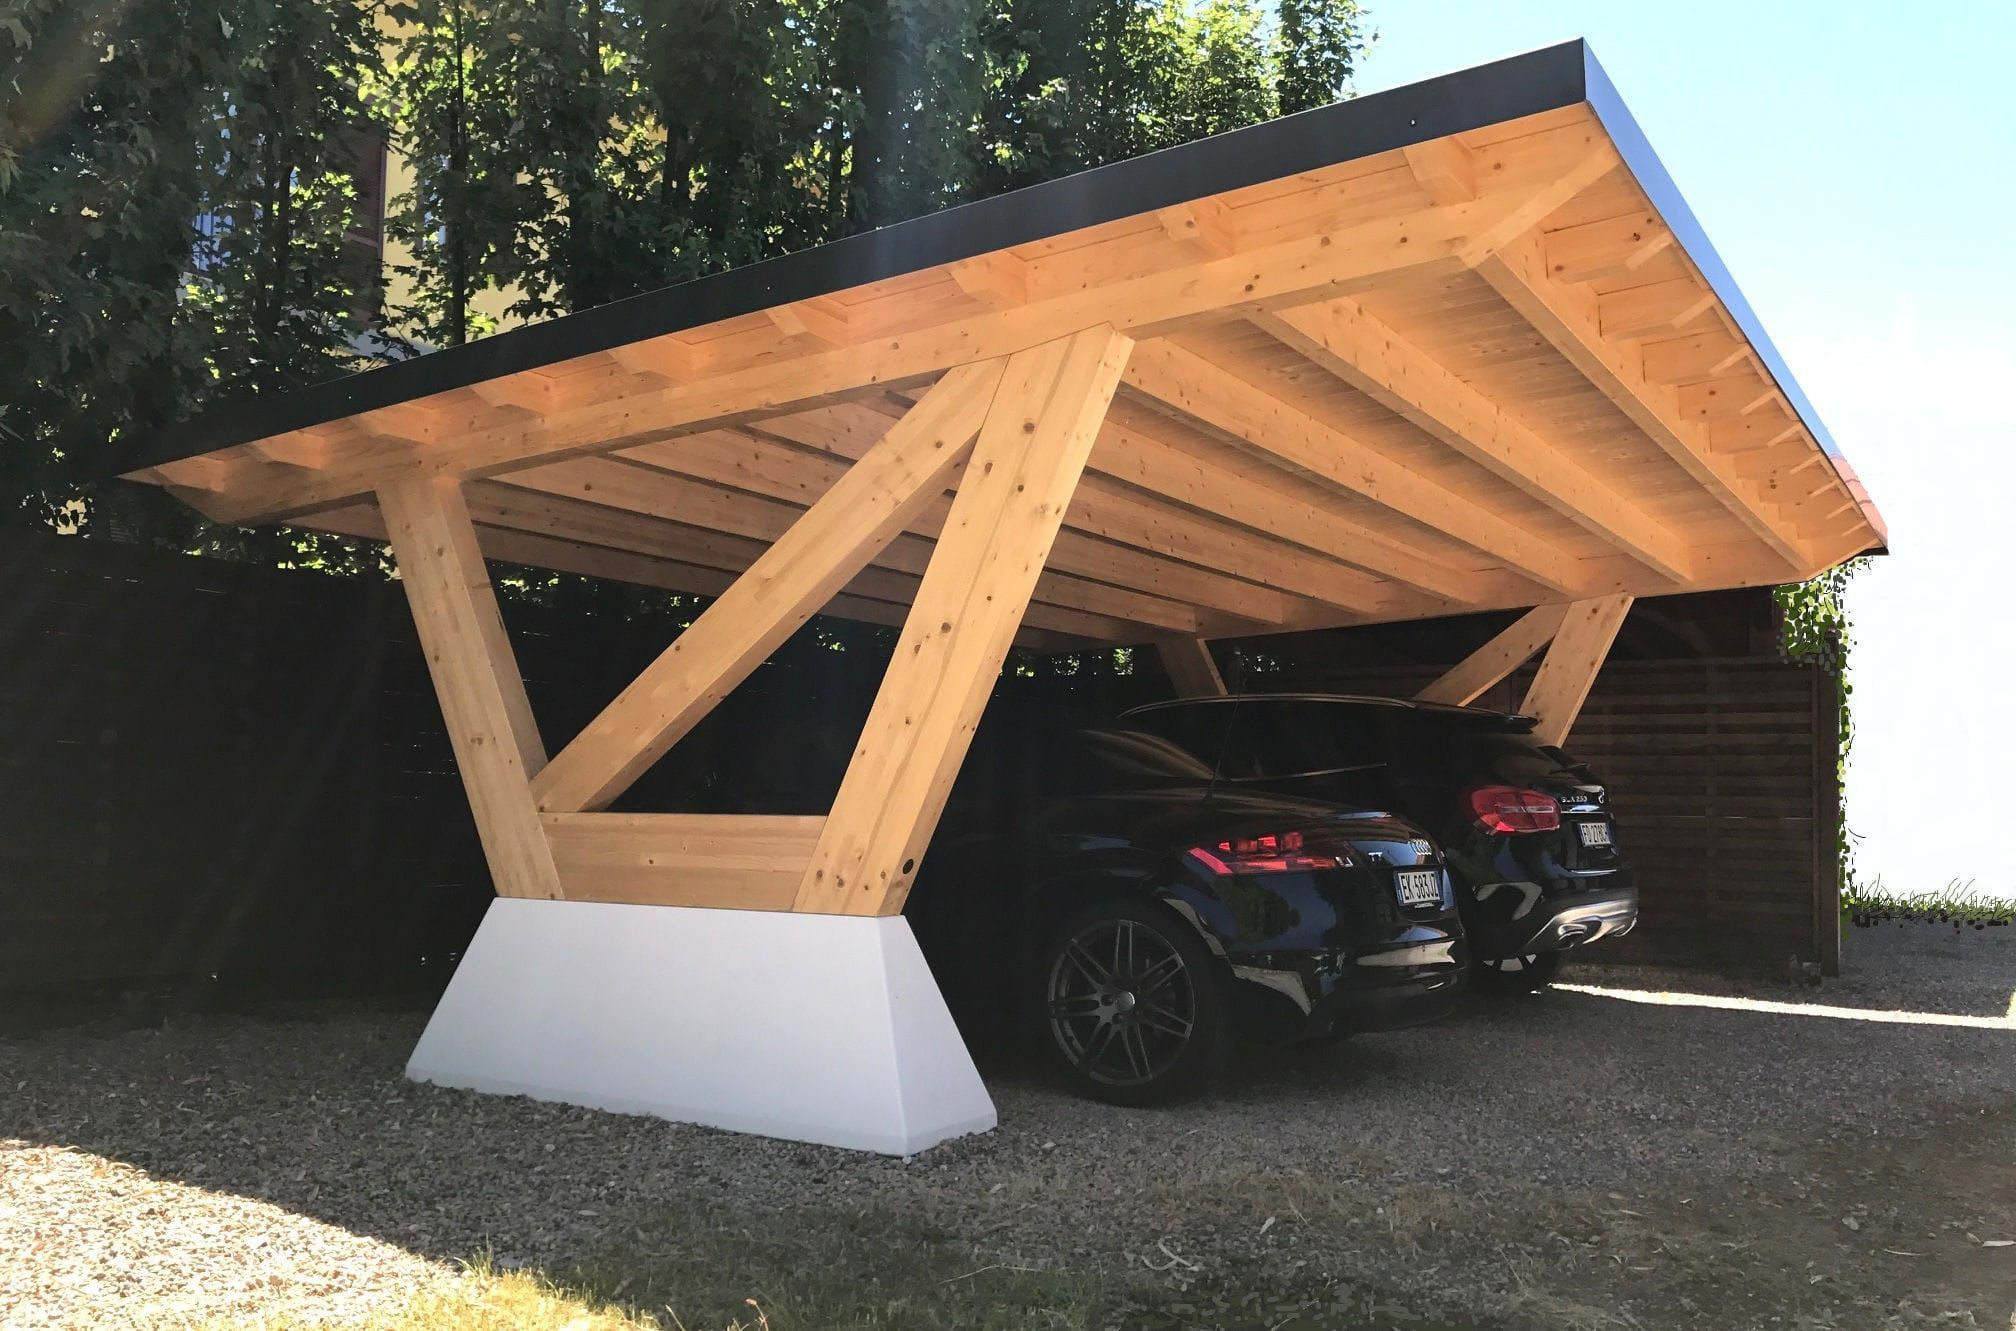 Arco Wooden Carport By Proverbio Outdoor Design Archiexp Arco Wooden Carport By Proverbio Outdoor In 2020 Wooden Carports Carport Designs Building A Carport